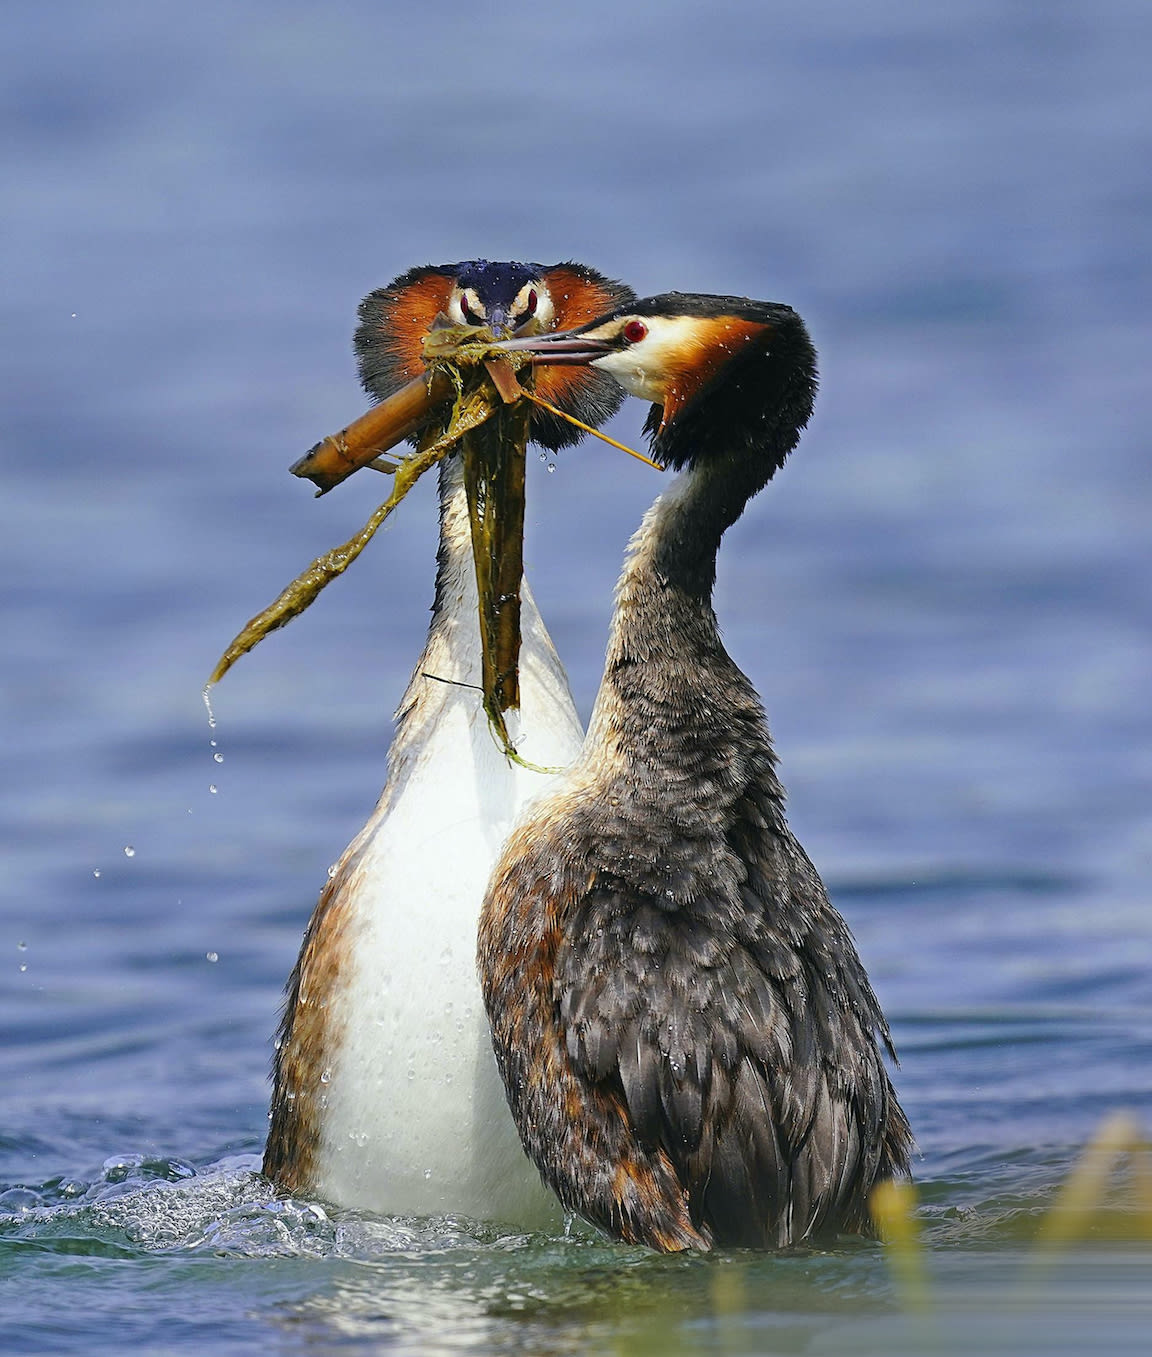 The elaborate mating ritual of the great crested grebe involves 'mewing' and calling, synchronised swimming, preening and fanning out their neck feathers. These birds were once almost hunted to extinction in the UK for the plumes on their head. Photo: Wang LiQiang/Shutterstock  Cover photo: Measuring around 40 to 60 cm in length and weighing up to 500 to 1500 gm, the great crested grebe is the largest of the grebes. The wetlands of Jamnagar, Gujarat, where this individual was photographed, hosts a sizeable population of these birds. Cover photo: Neel Sureja